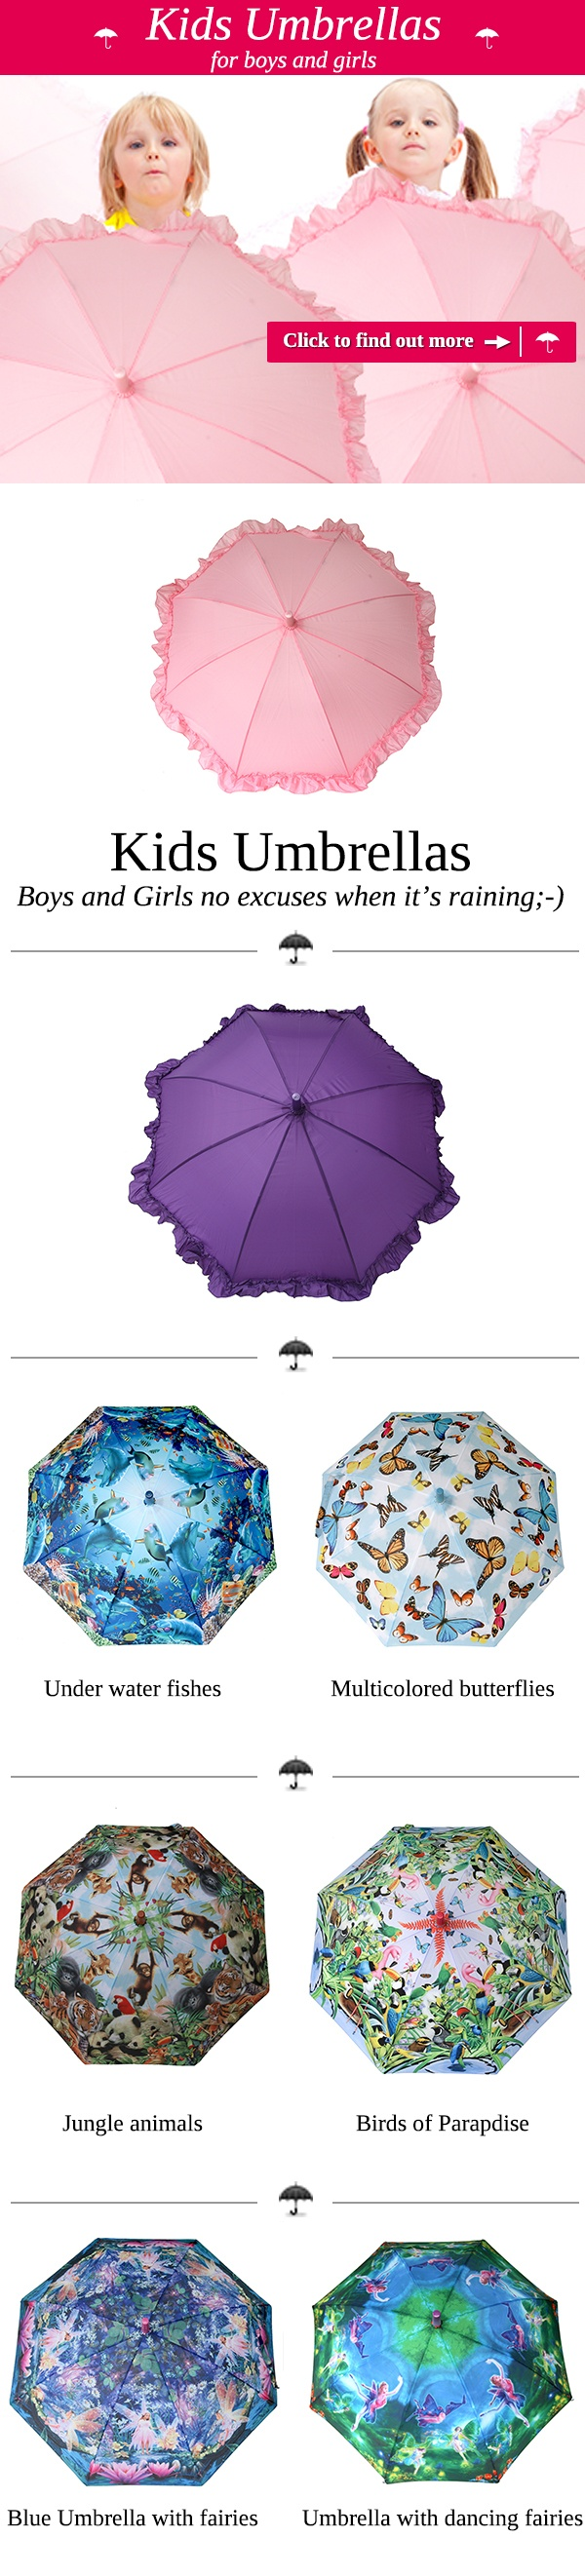 No excuses when it's raining. Click on the image to find out our kids #umbrellas are printed with nice and cute motifs of #butterflies, #fishes and many more to brighten every rainy day.